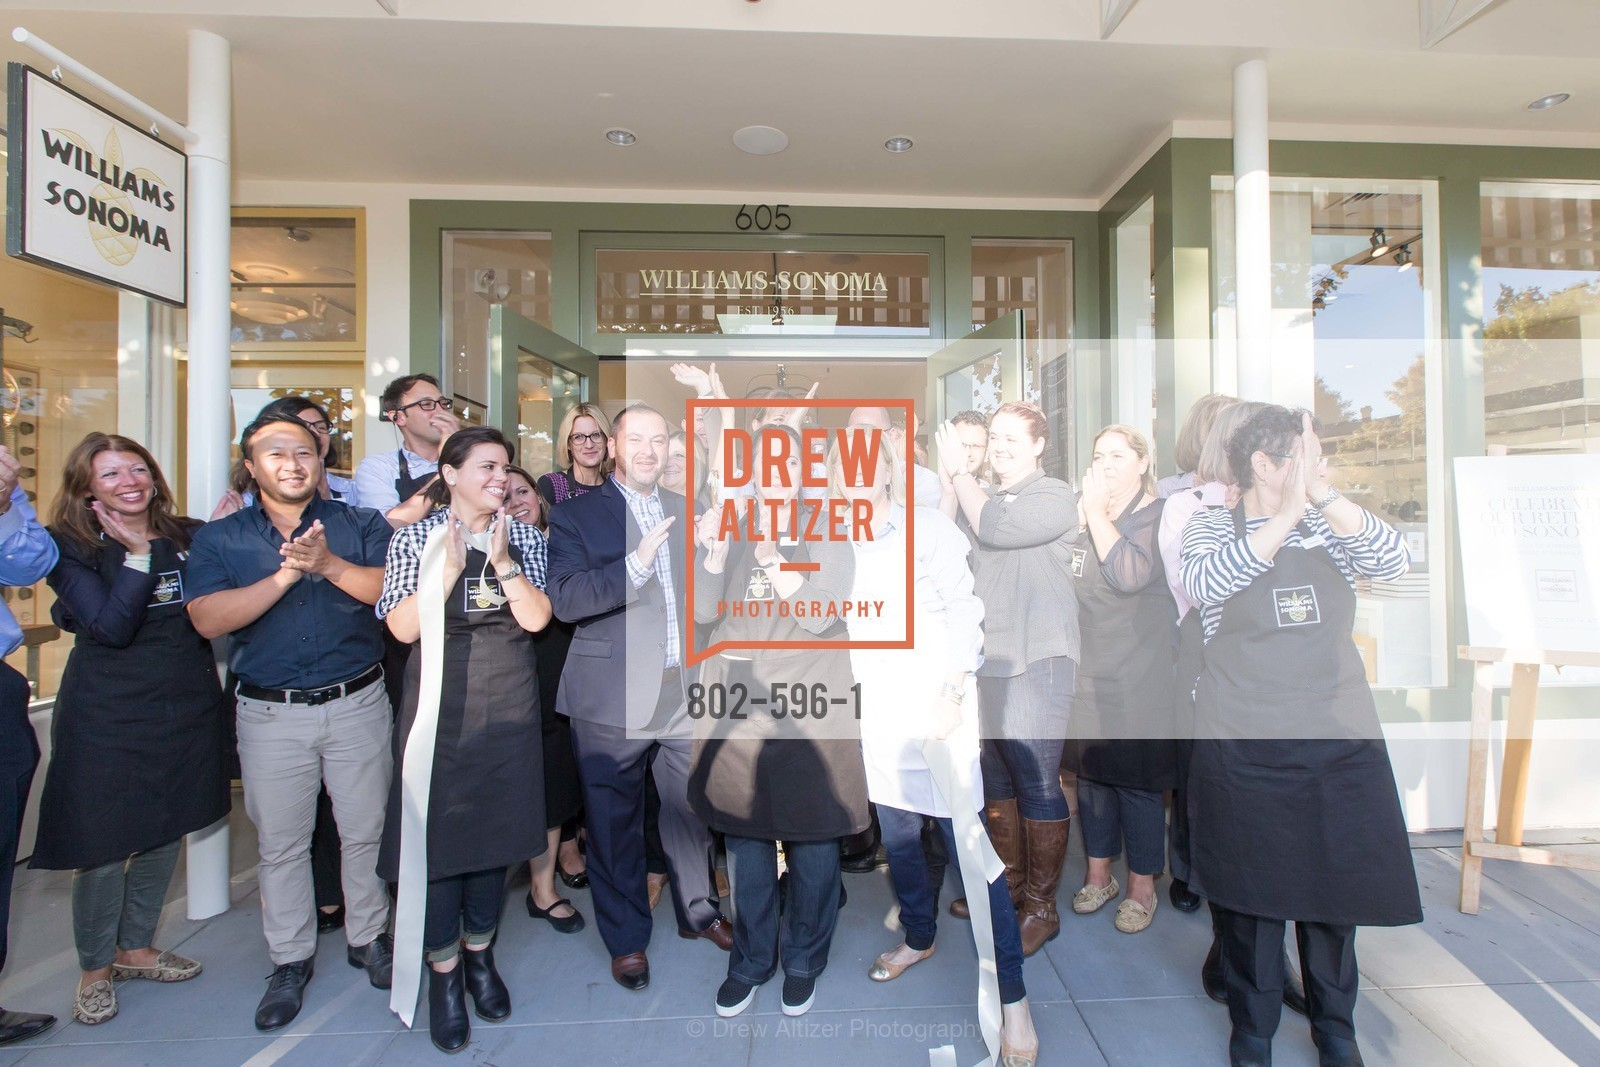 Extras, WILLIAMS-SONOMA Grand Re-Opening Breakfast, October 5th, 2014, Photo,Drew Altizer, Drew Altizer Photography, full-service agency, private events, San Francisco photographer, photographer california